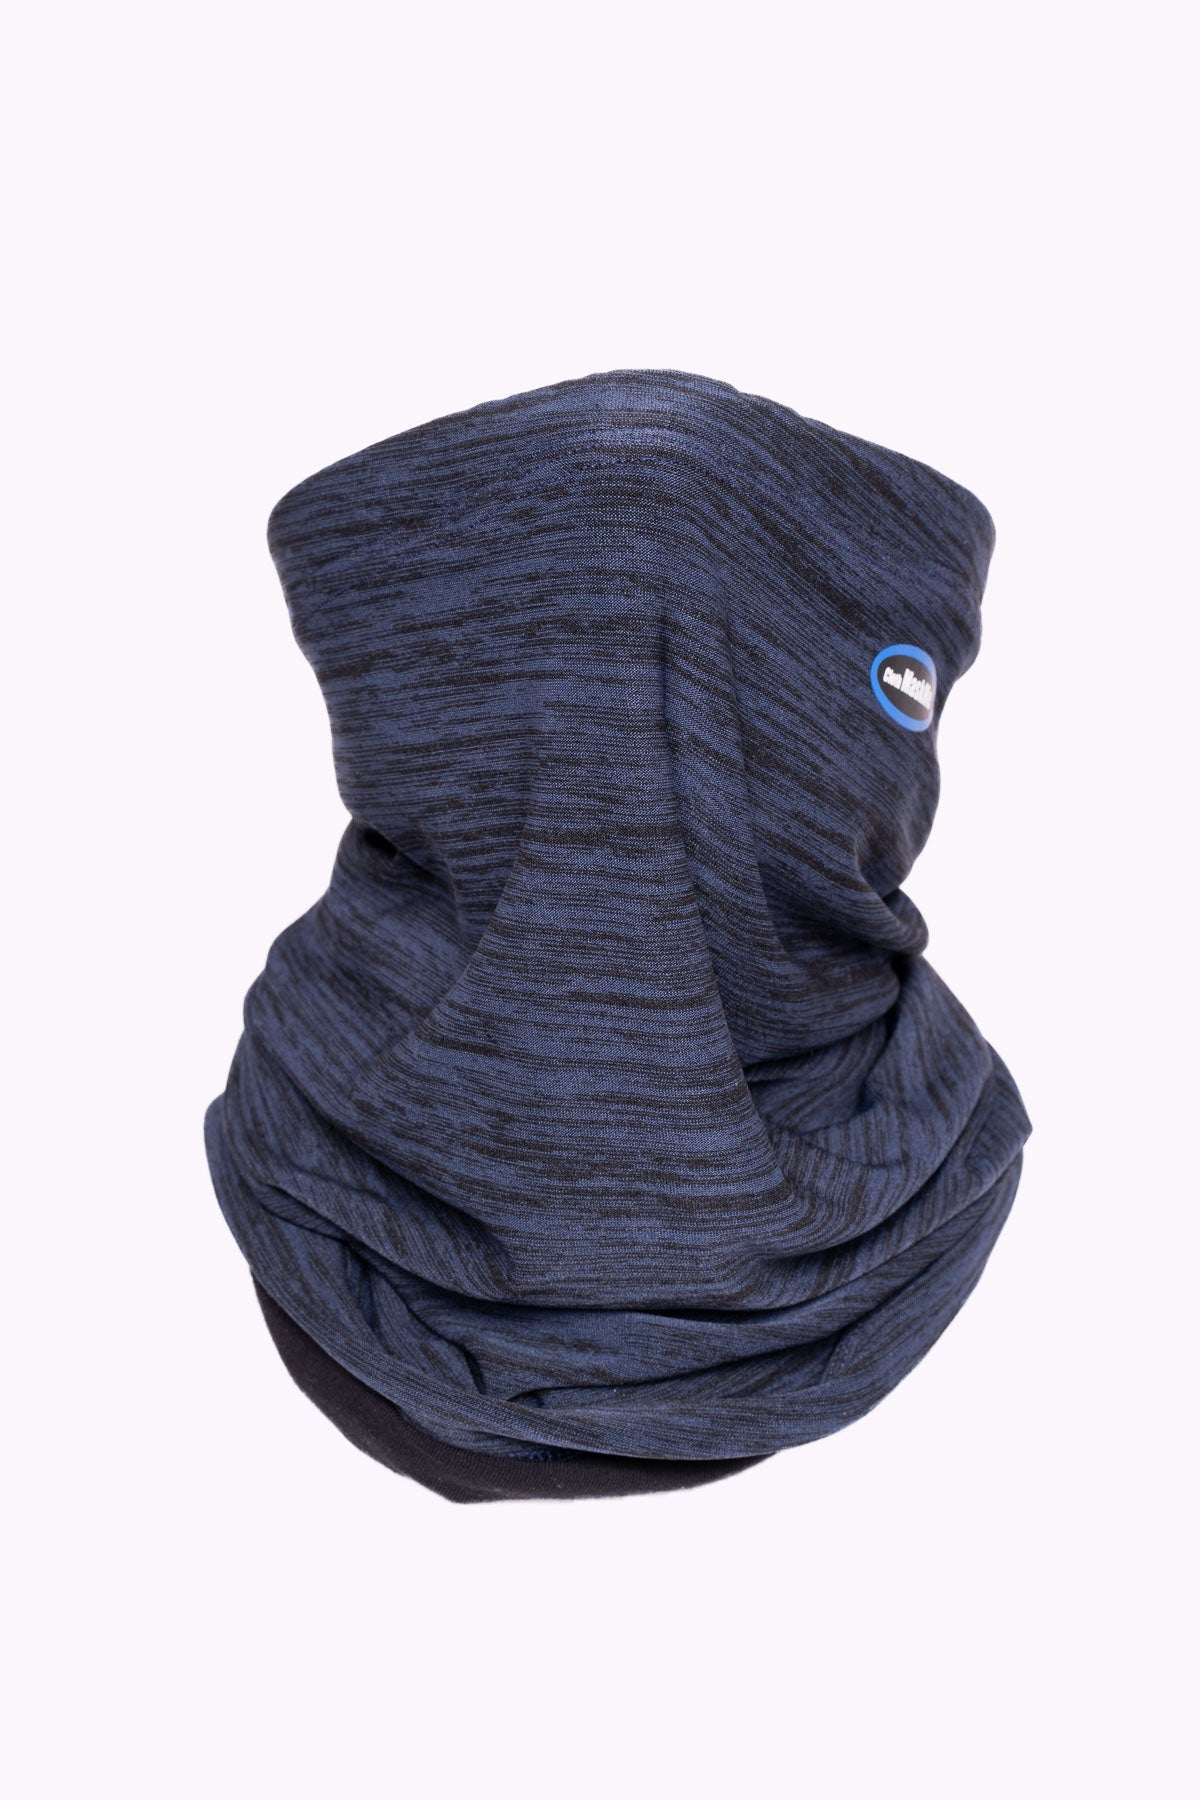 Fitted Ink Navy Adjustable Layered Snoods